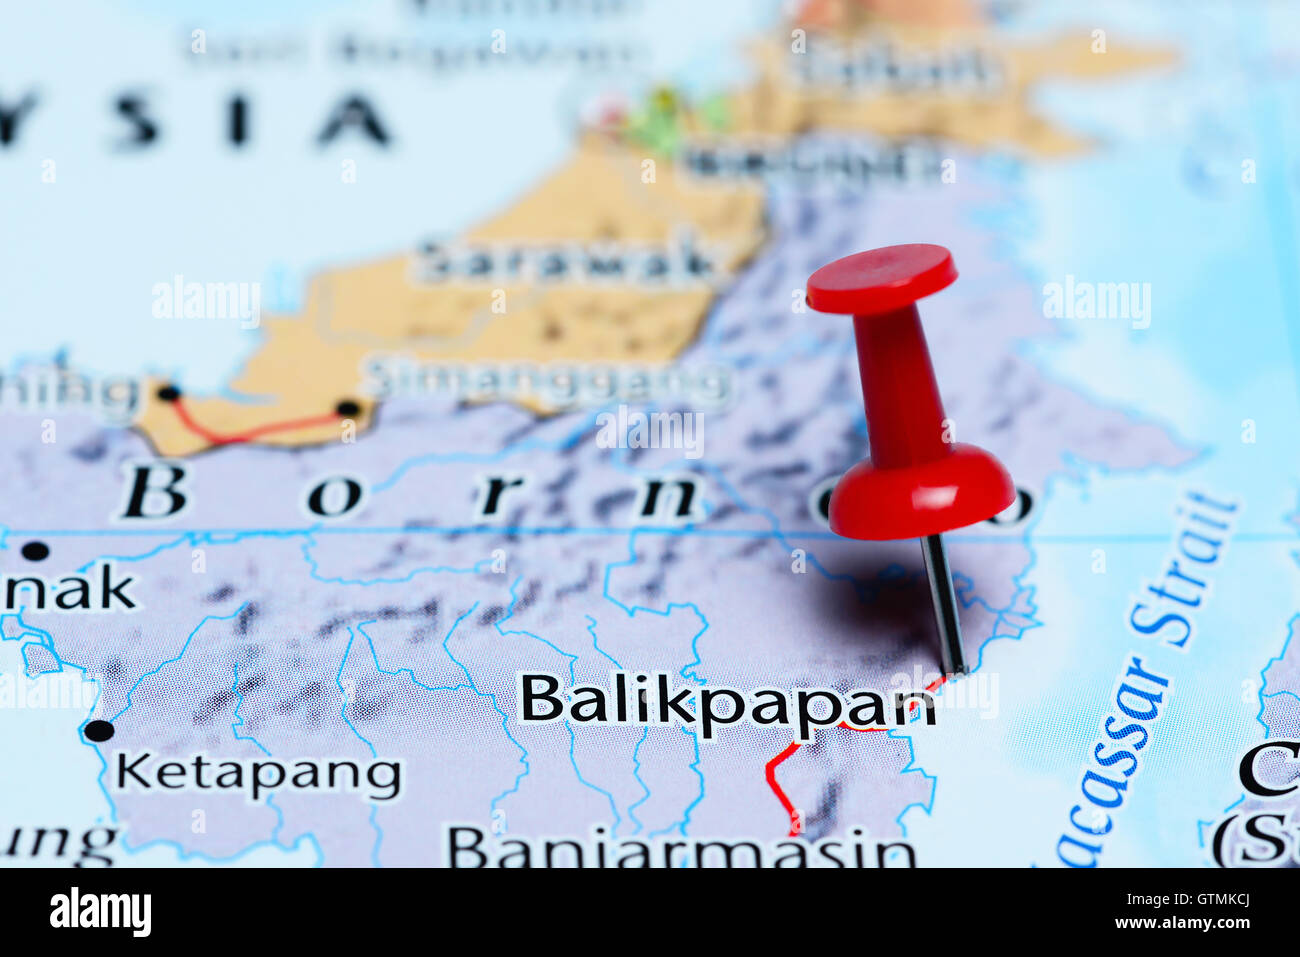 Balikpapan pinned on a map of indonesia stock photo 118468242 alamy balikpapan pinned on a map of indonesia gumiabroncs Choice Image